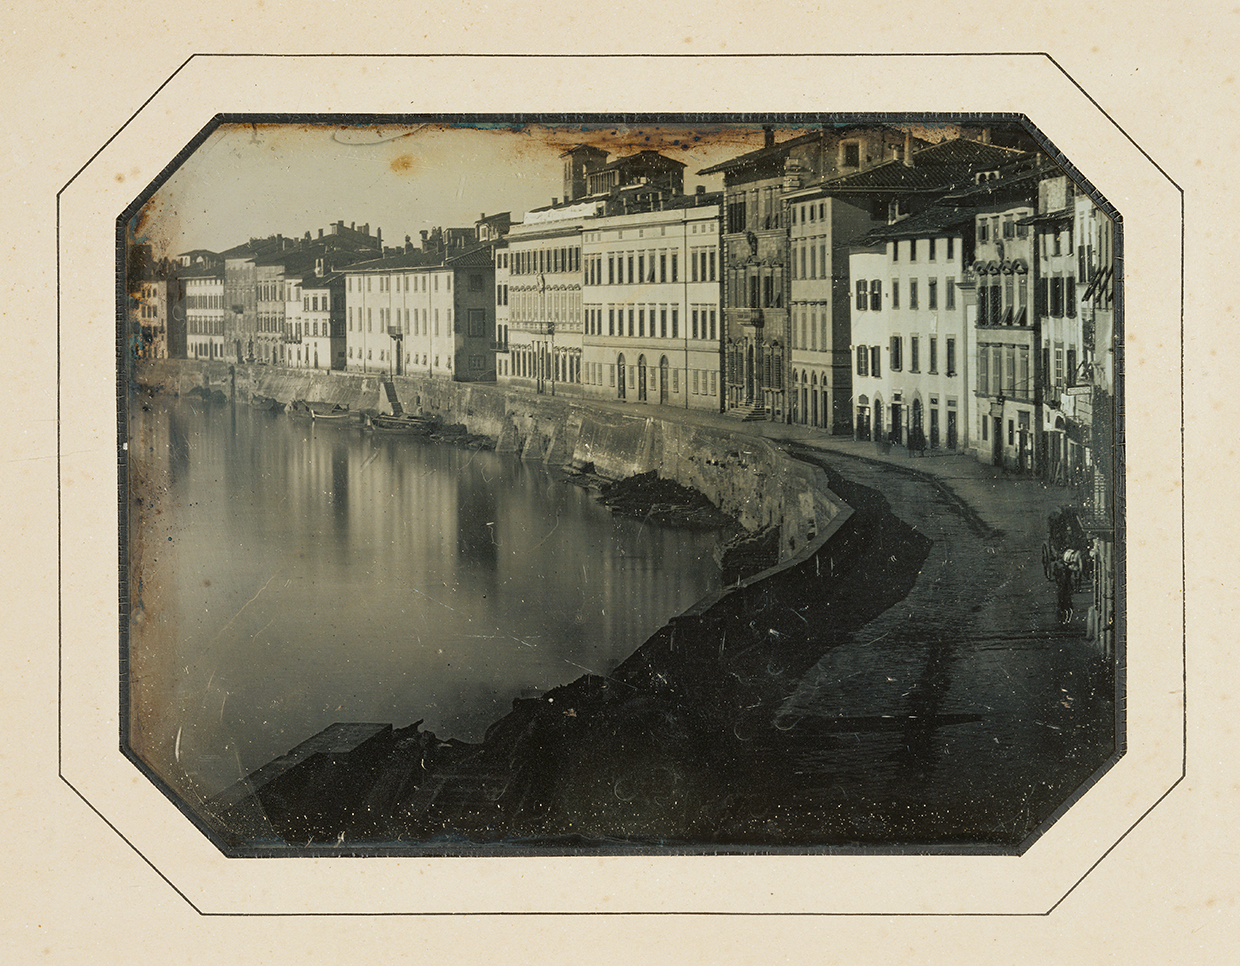 View of Pisa Along The Arno River; Unknown maker, French; May 1844; Daguerreotype; 1/2 plate, Image: 10.6 × 14.4 cm (4 3/16 × 5 11/16 in.), Object (whole): 17.3 × 21.6 cm (6 13/16 × 8 1/2 in.)